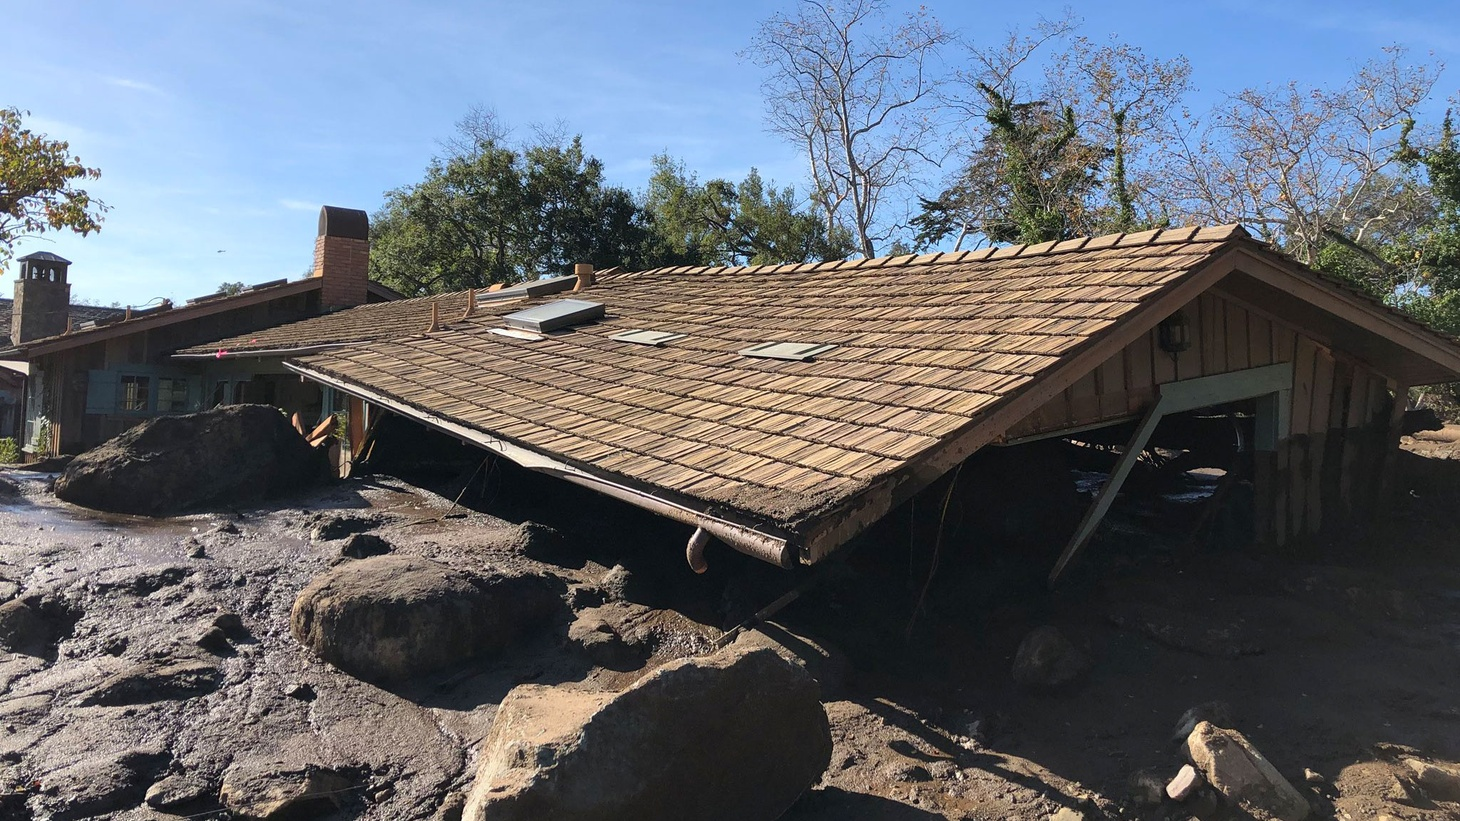 Authorities in Santa Barbara County are performing rescue operations as mudslides and debris have led to multiple deaths, dozens of injuries and have left hundreds of people trapped in their homes.